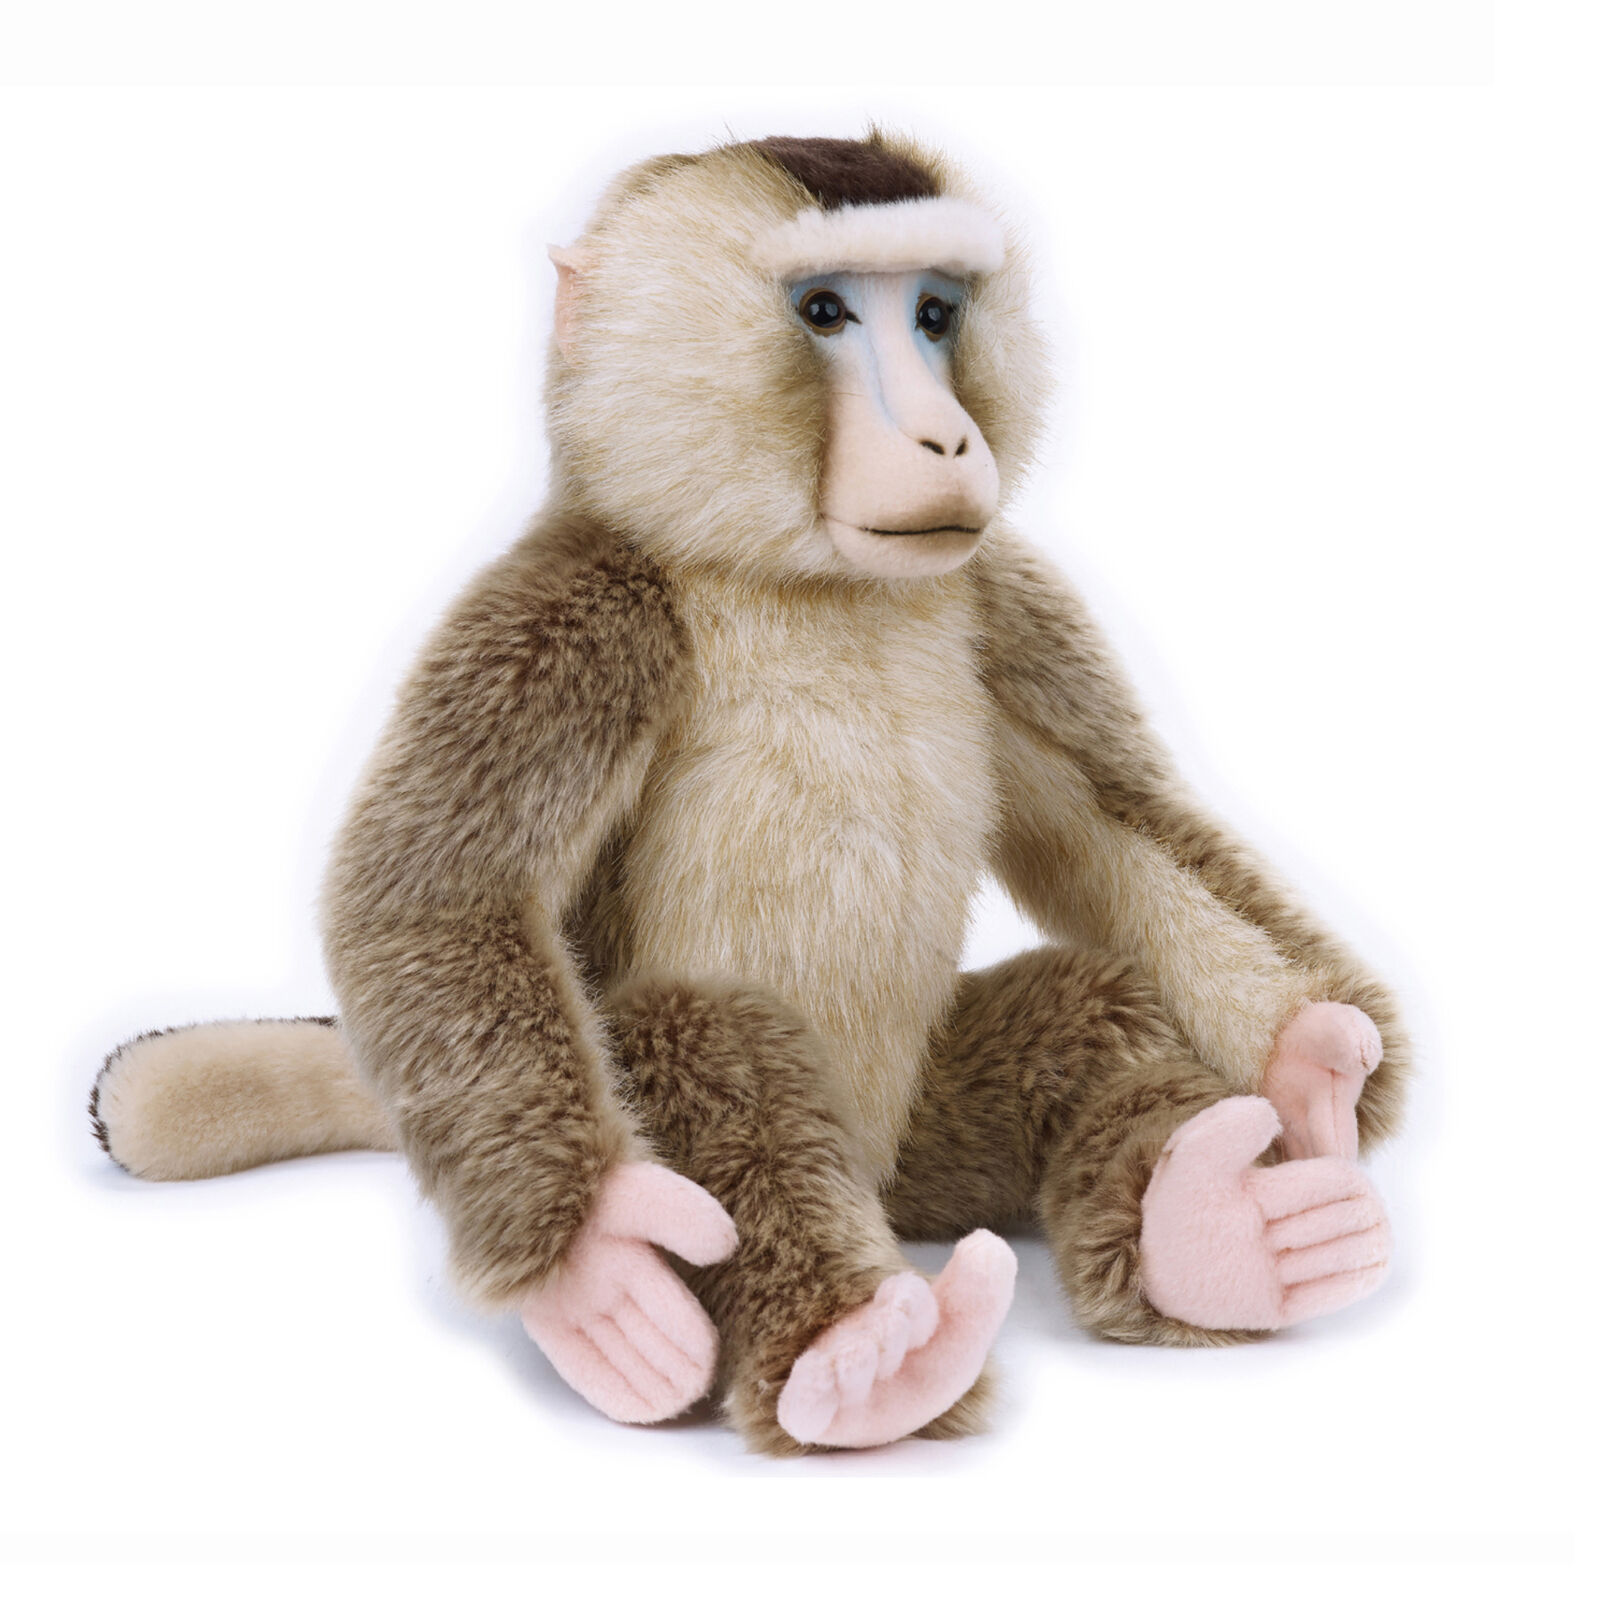 Lelly - National Geographic Plush, Macaque